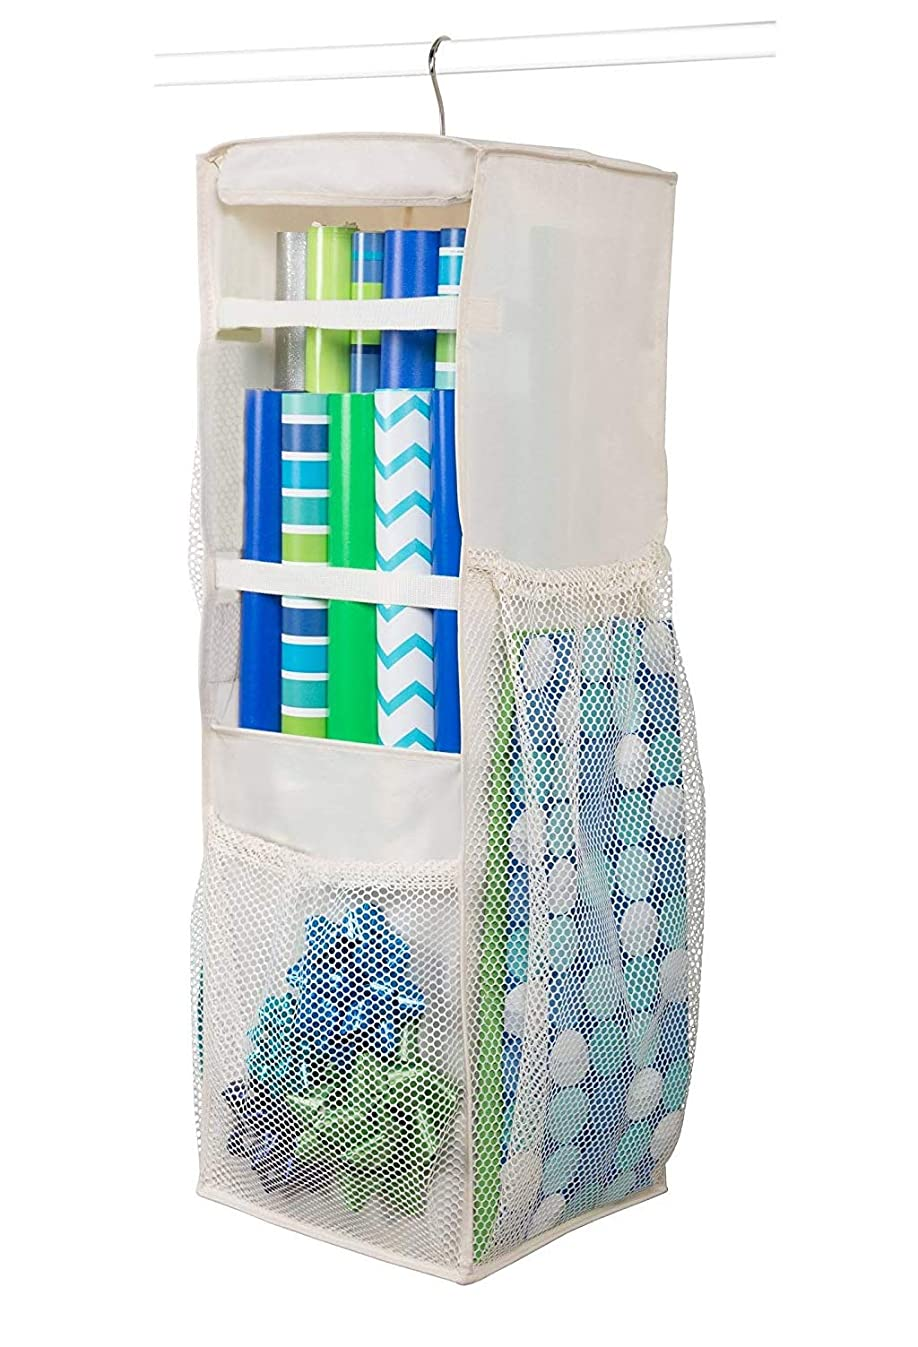 "Hanging Wrapping Paper Storage - Holds Up to 20 Rolls, 360 Swivel & Extra Durable Gift Wrap Organizer Bag with Side Bin Pockets for All of Your Birthday, Holiday (Ivory) 32"" x 11"" x 10"""